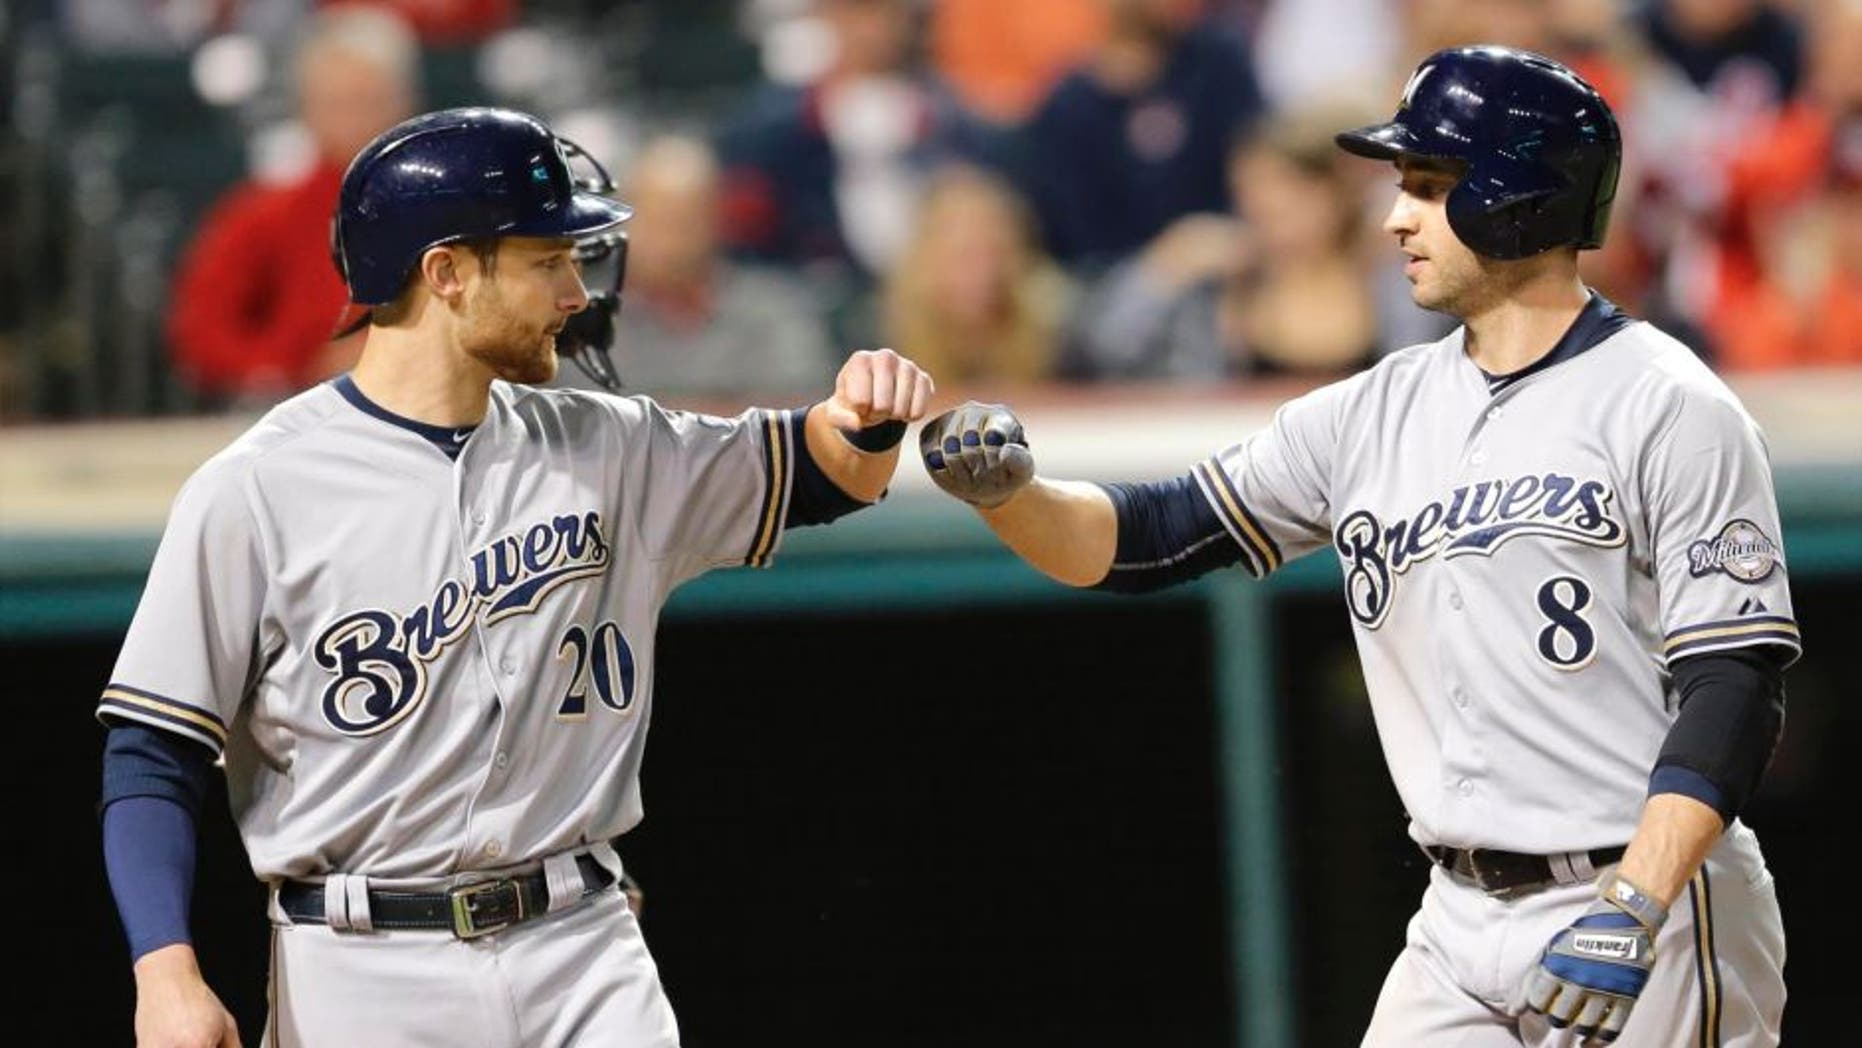 Tuesday, Aug. 25: The Milwaukee Brewers' Ryan Braun (right) is congratulated by Jonathan Lucroy after Braun hit a two-run home run off Cleveland Indians starting pitcher Josh Tomlin in the sixth inning in Cleveland.